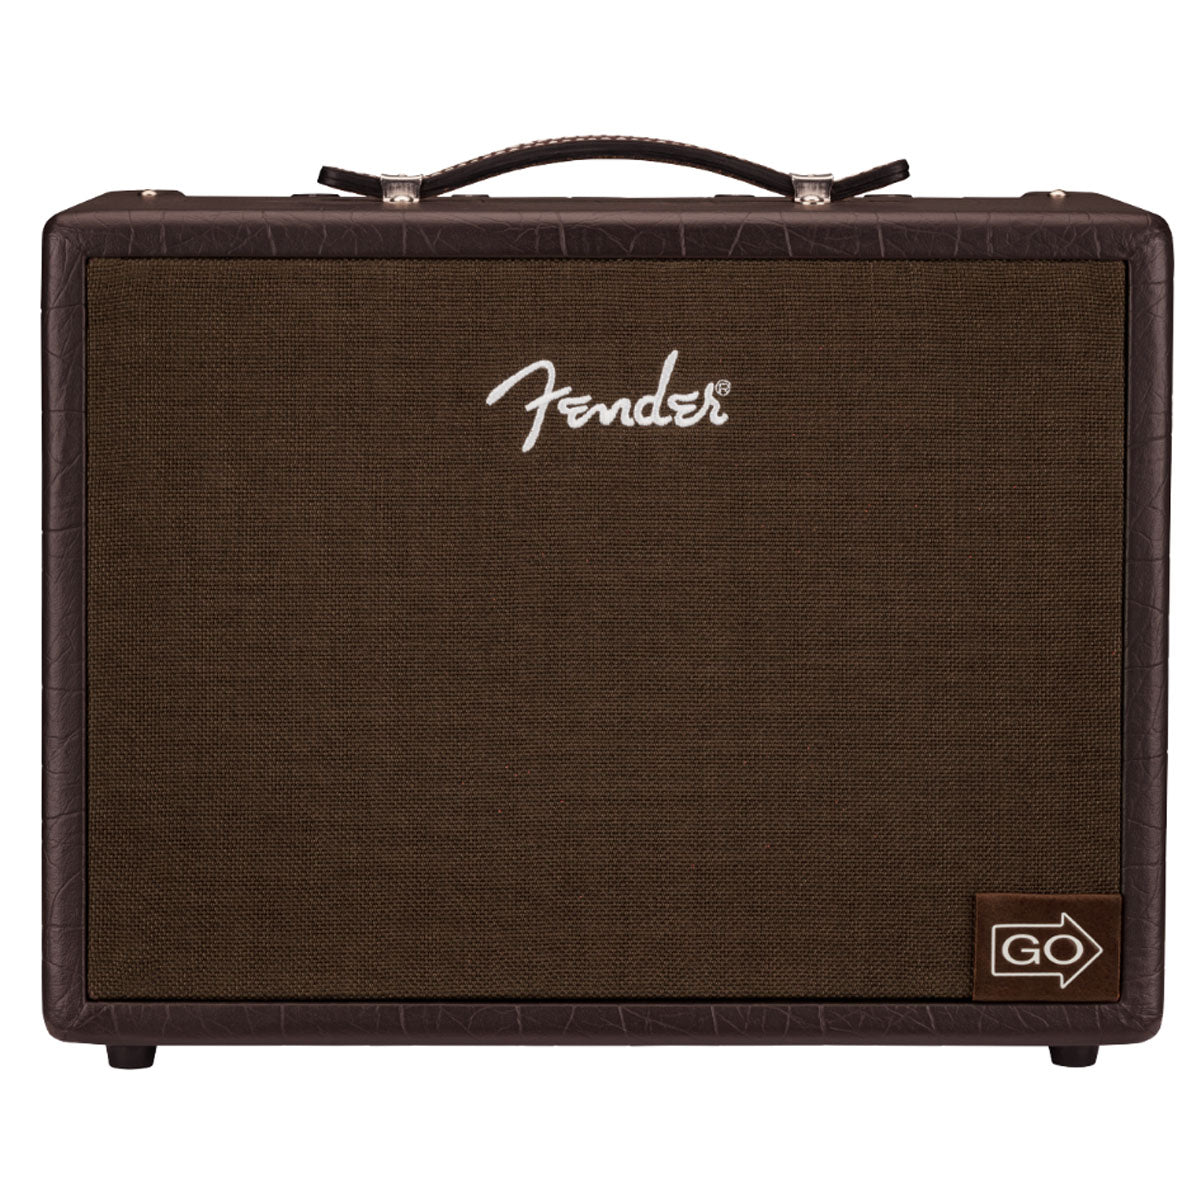 Fender Acoustic Junior GO Rechargeable Guitar Amplifier 100w Combo Amp - 2314403000